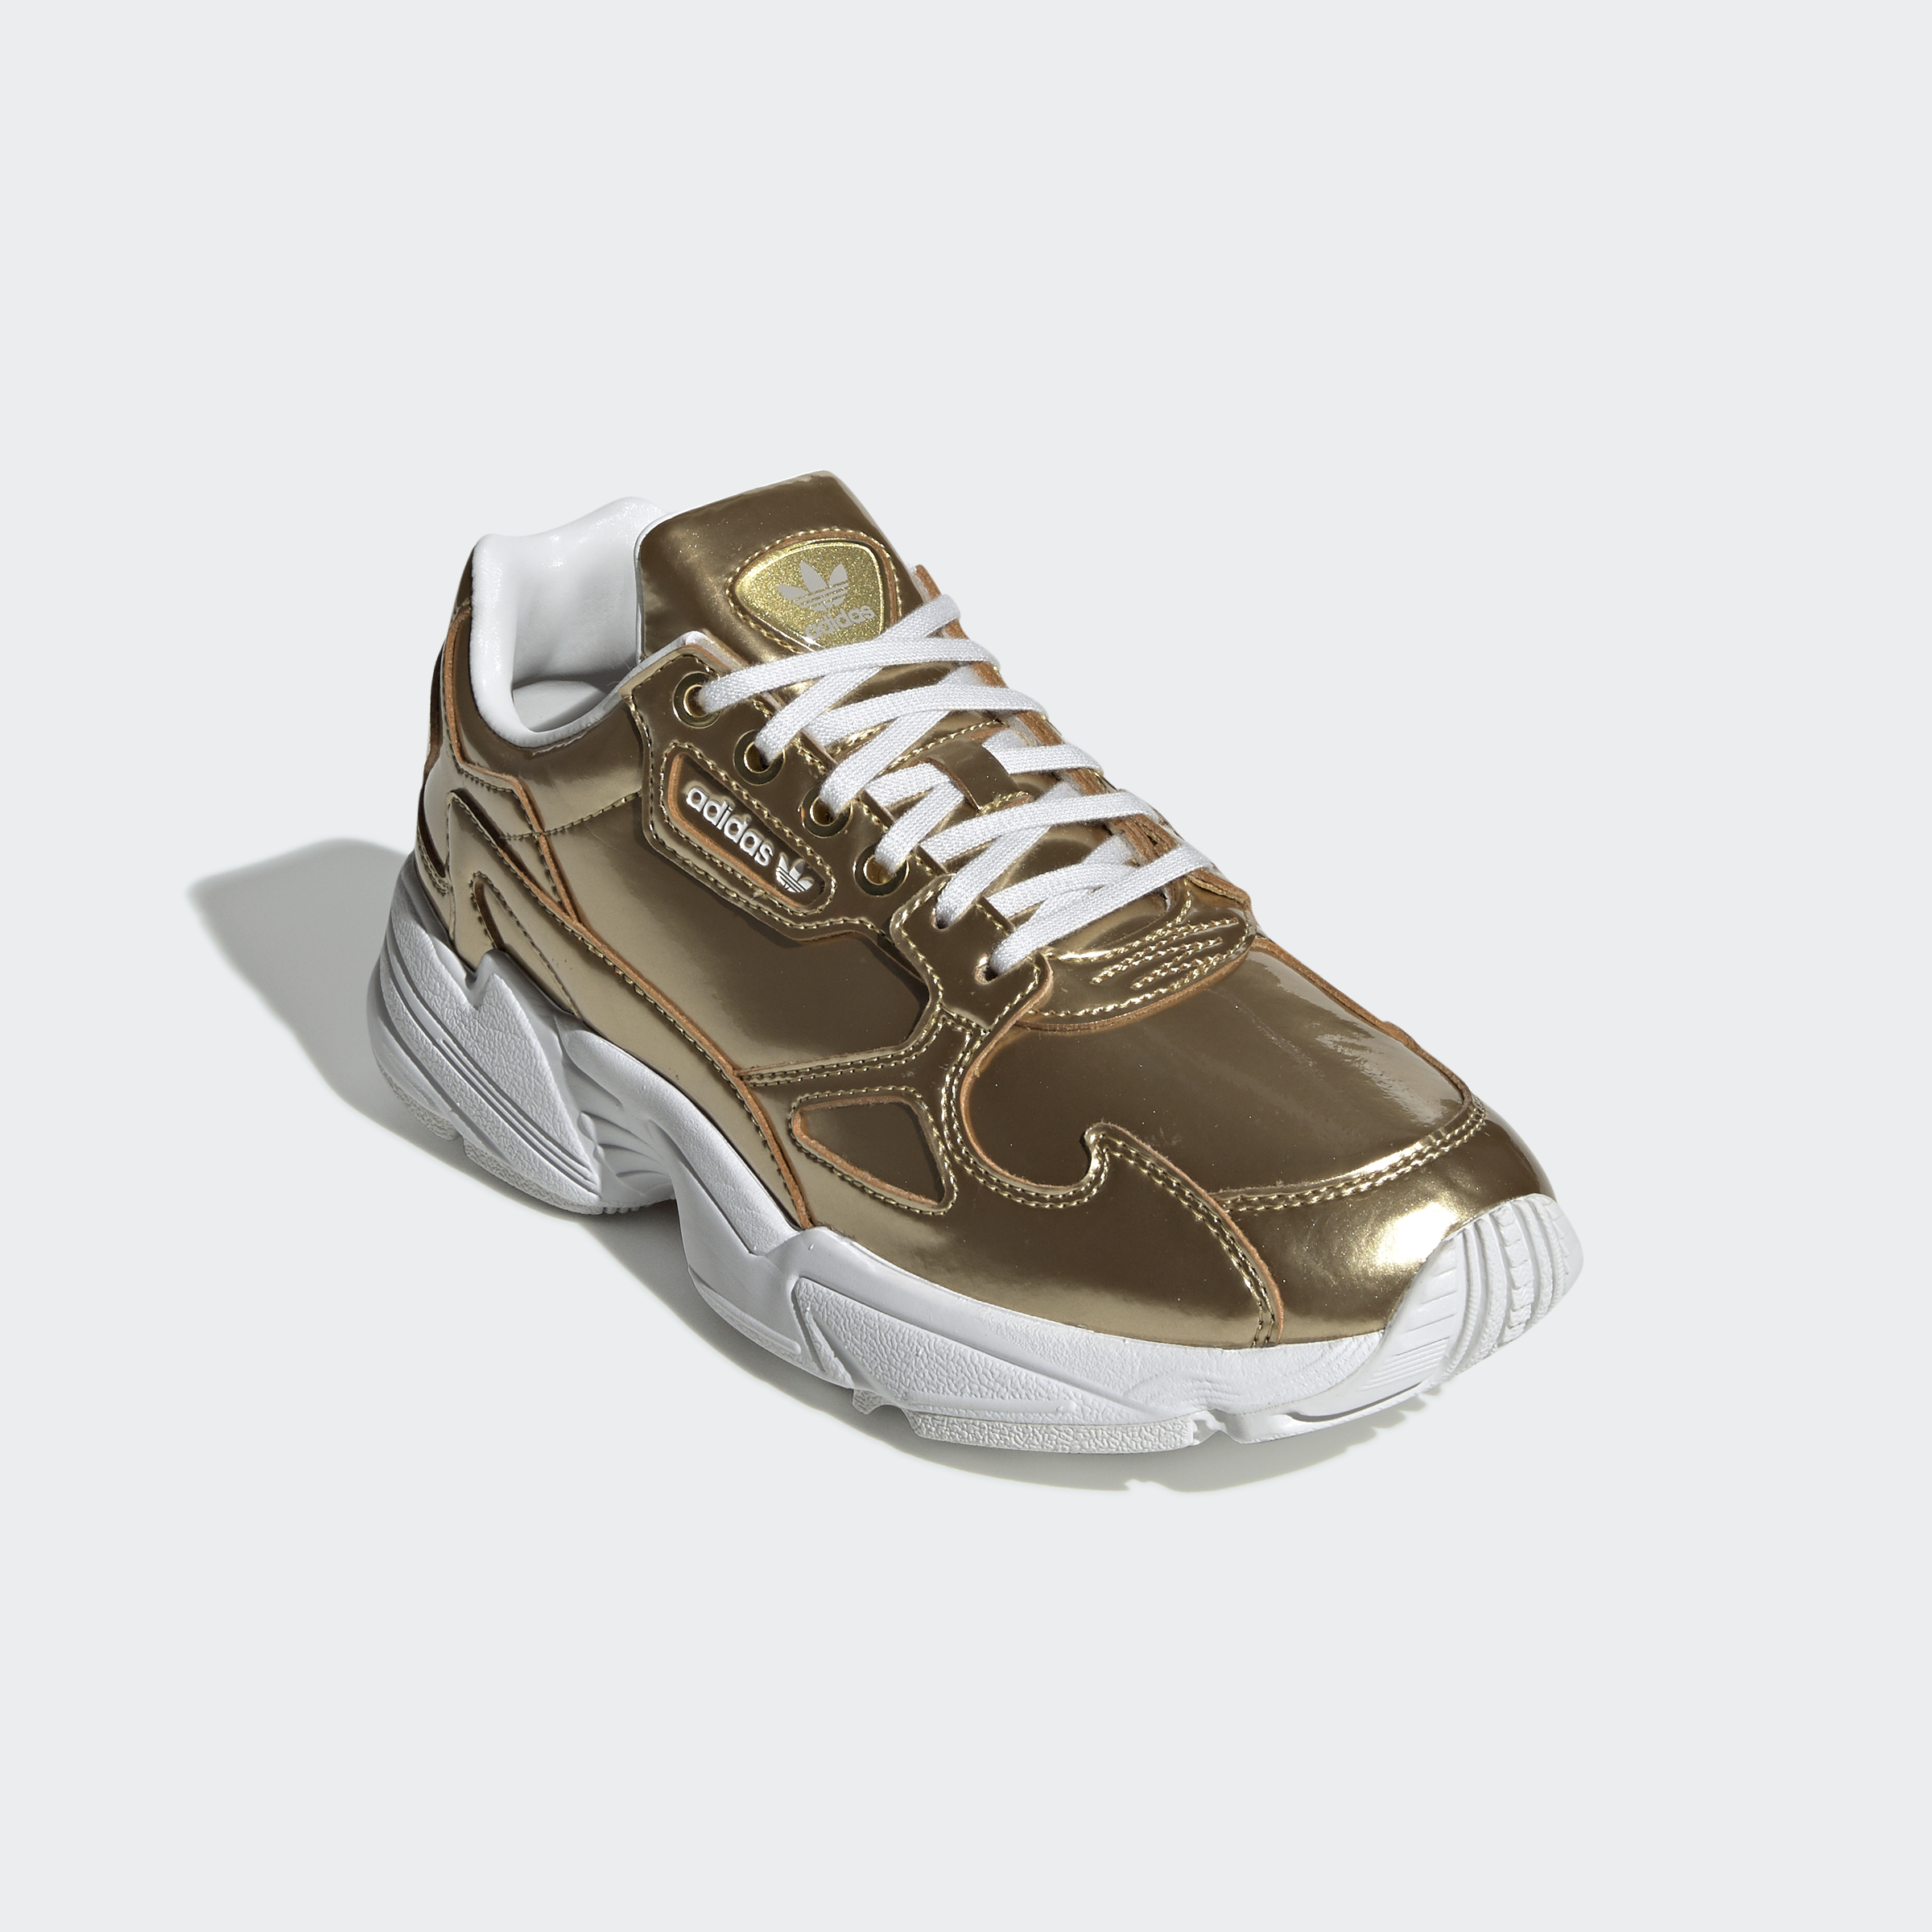 adidas-Falcon-Shoes-Women-039-s-Athletic-amp-Sneakers thumbnail 15